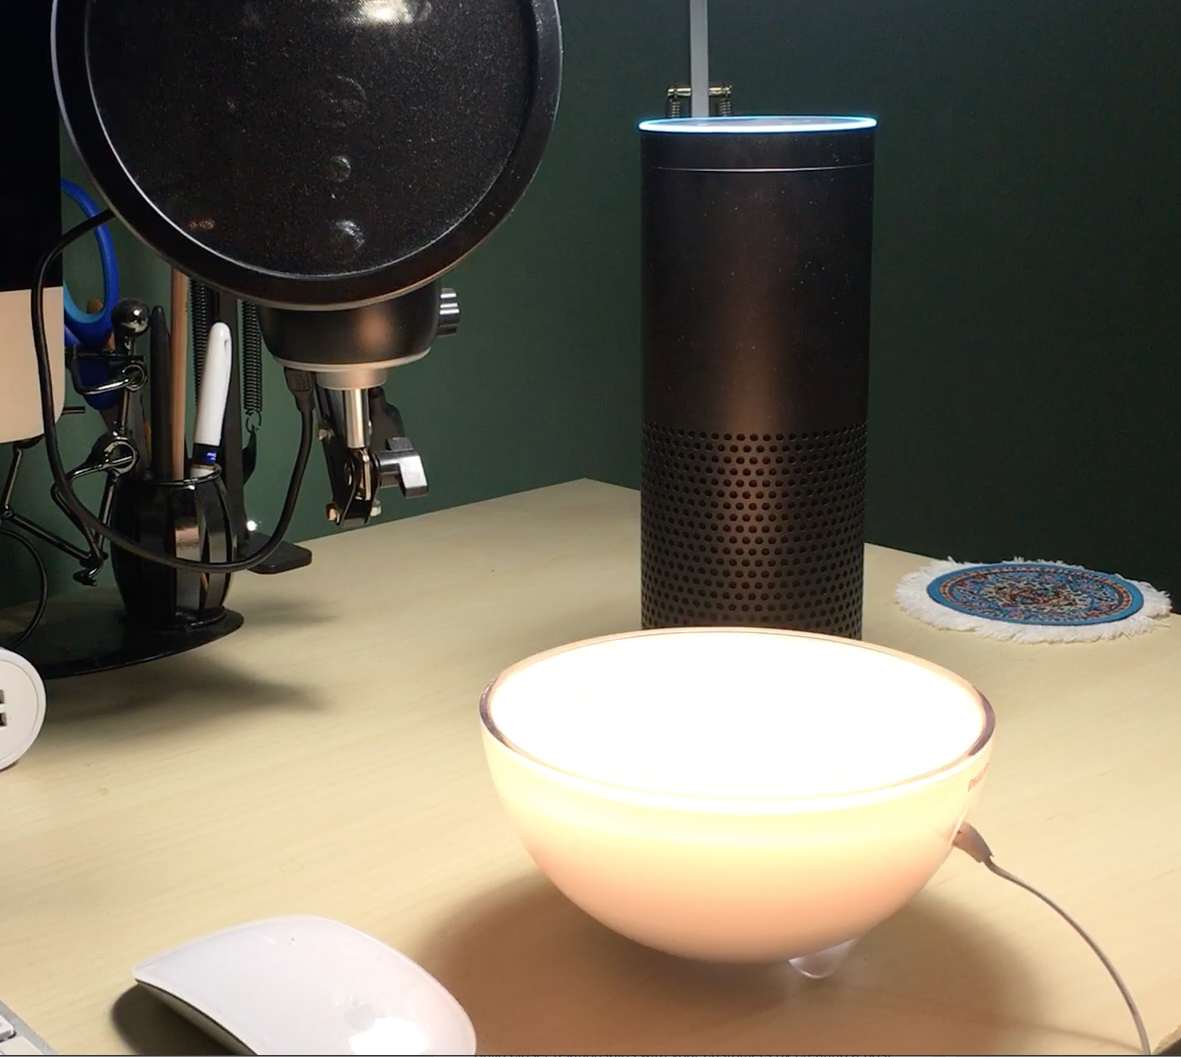 A smart bulb is seen blinking. Right behind it is Amazon Echo.